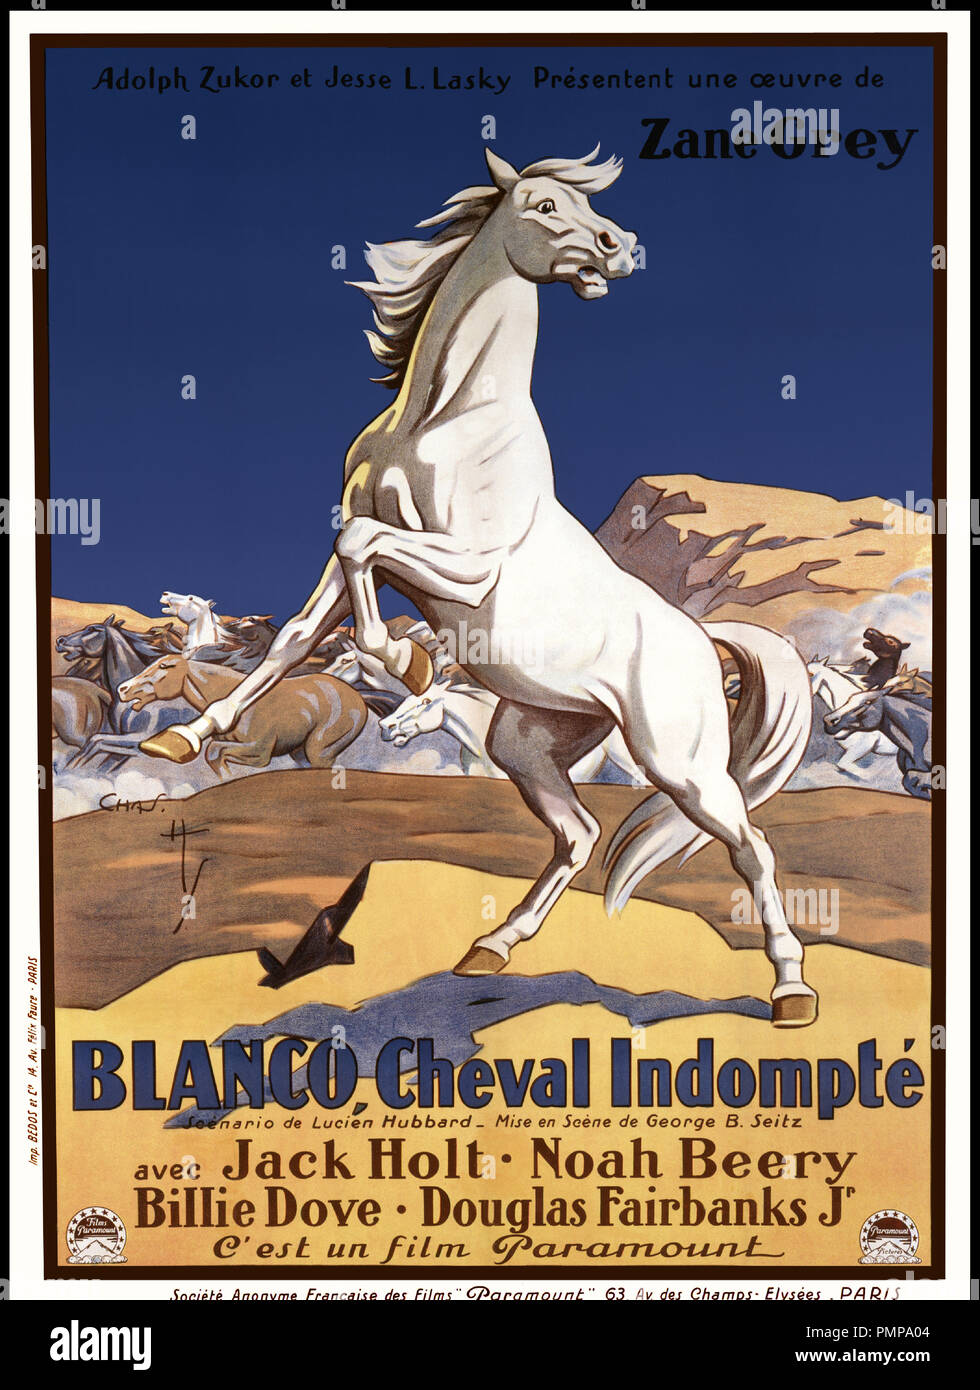 Affiche Cheval Prod Db  Paramount Dr Blanco Cheval Indompte Wild Horse Mesa